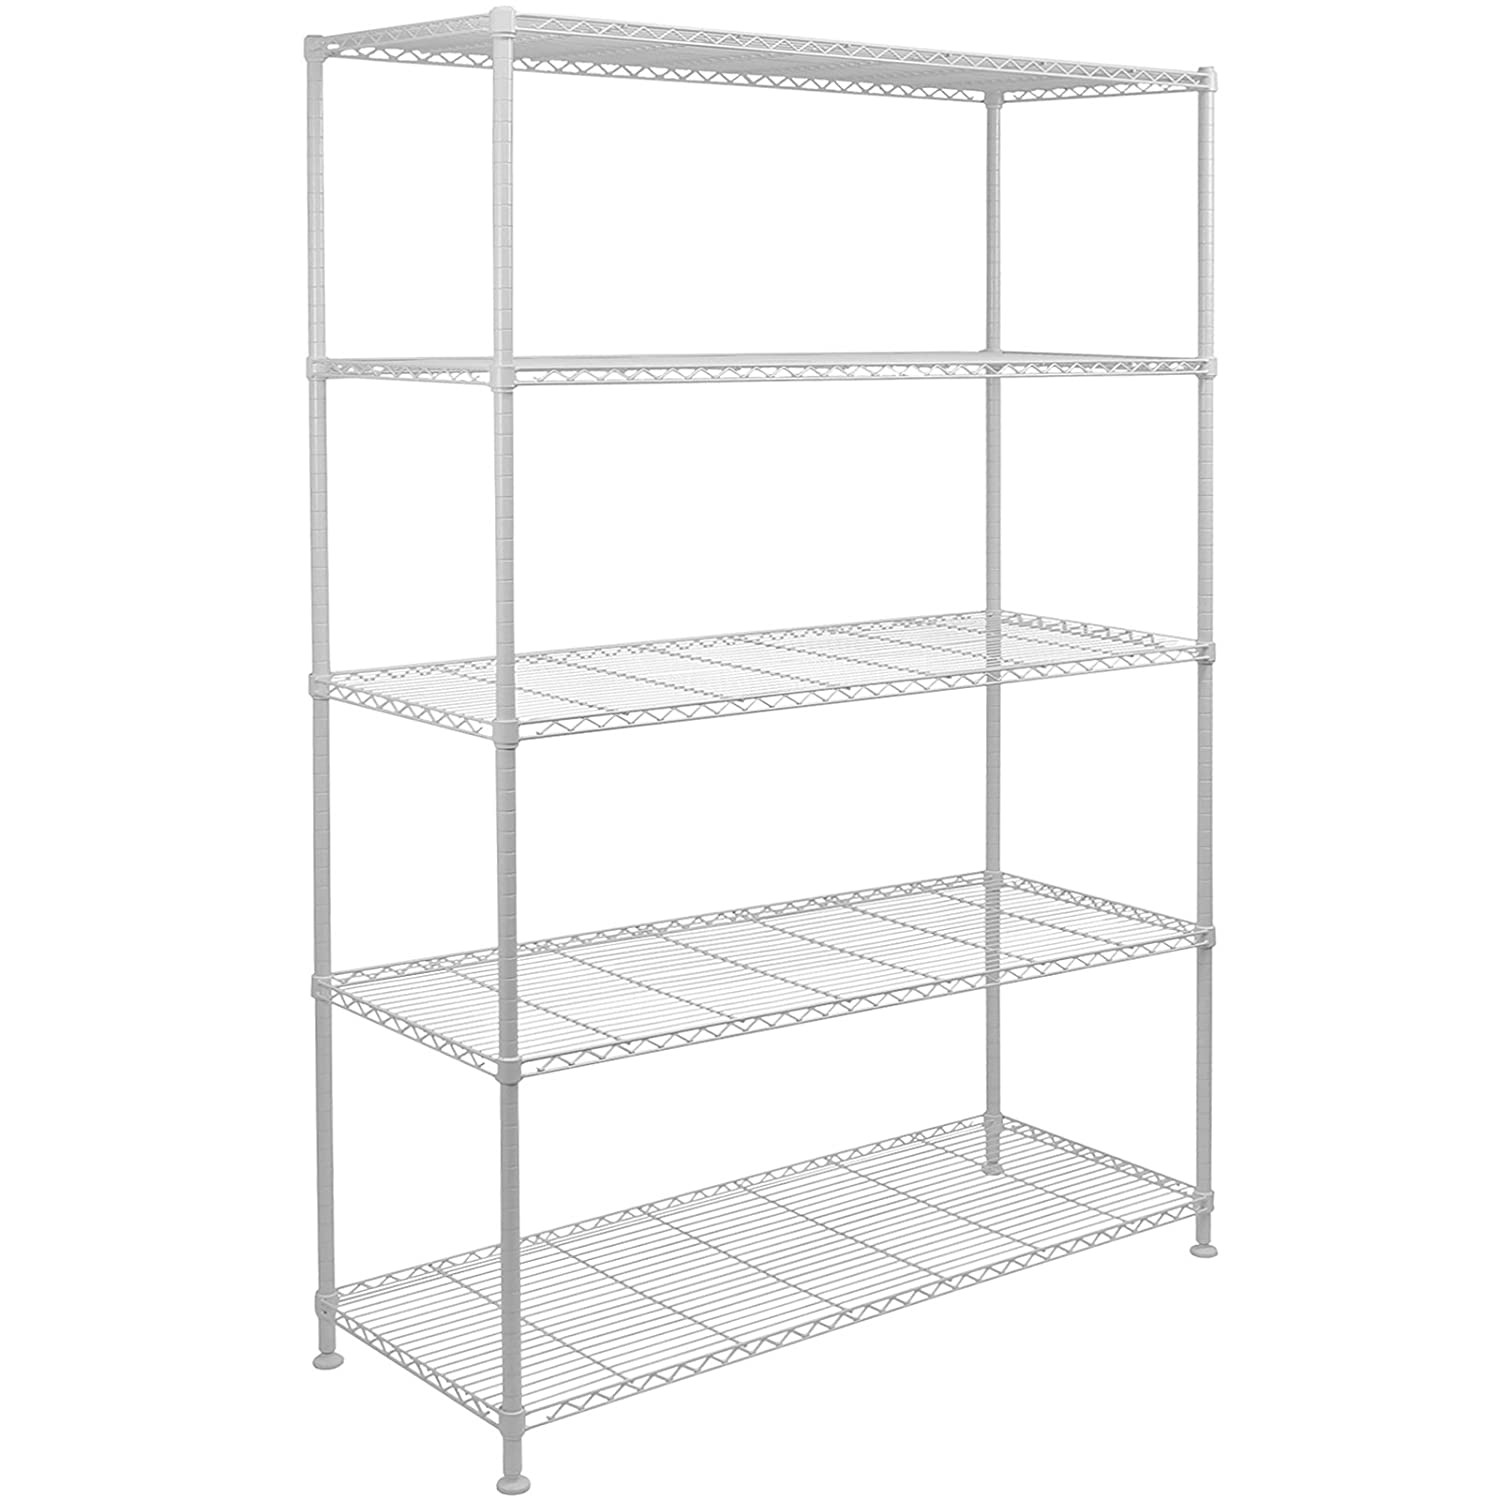 Hartleys 180cm 5 Tier Adjustable Wire Shelving Unit - Choice of Colour